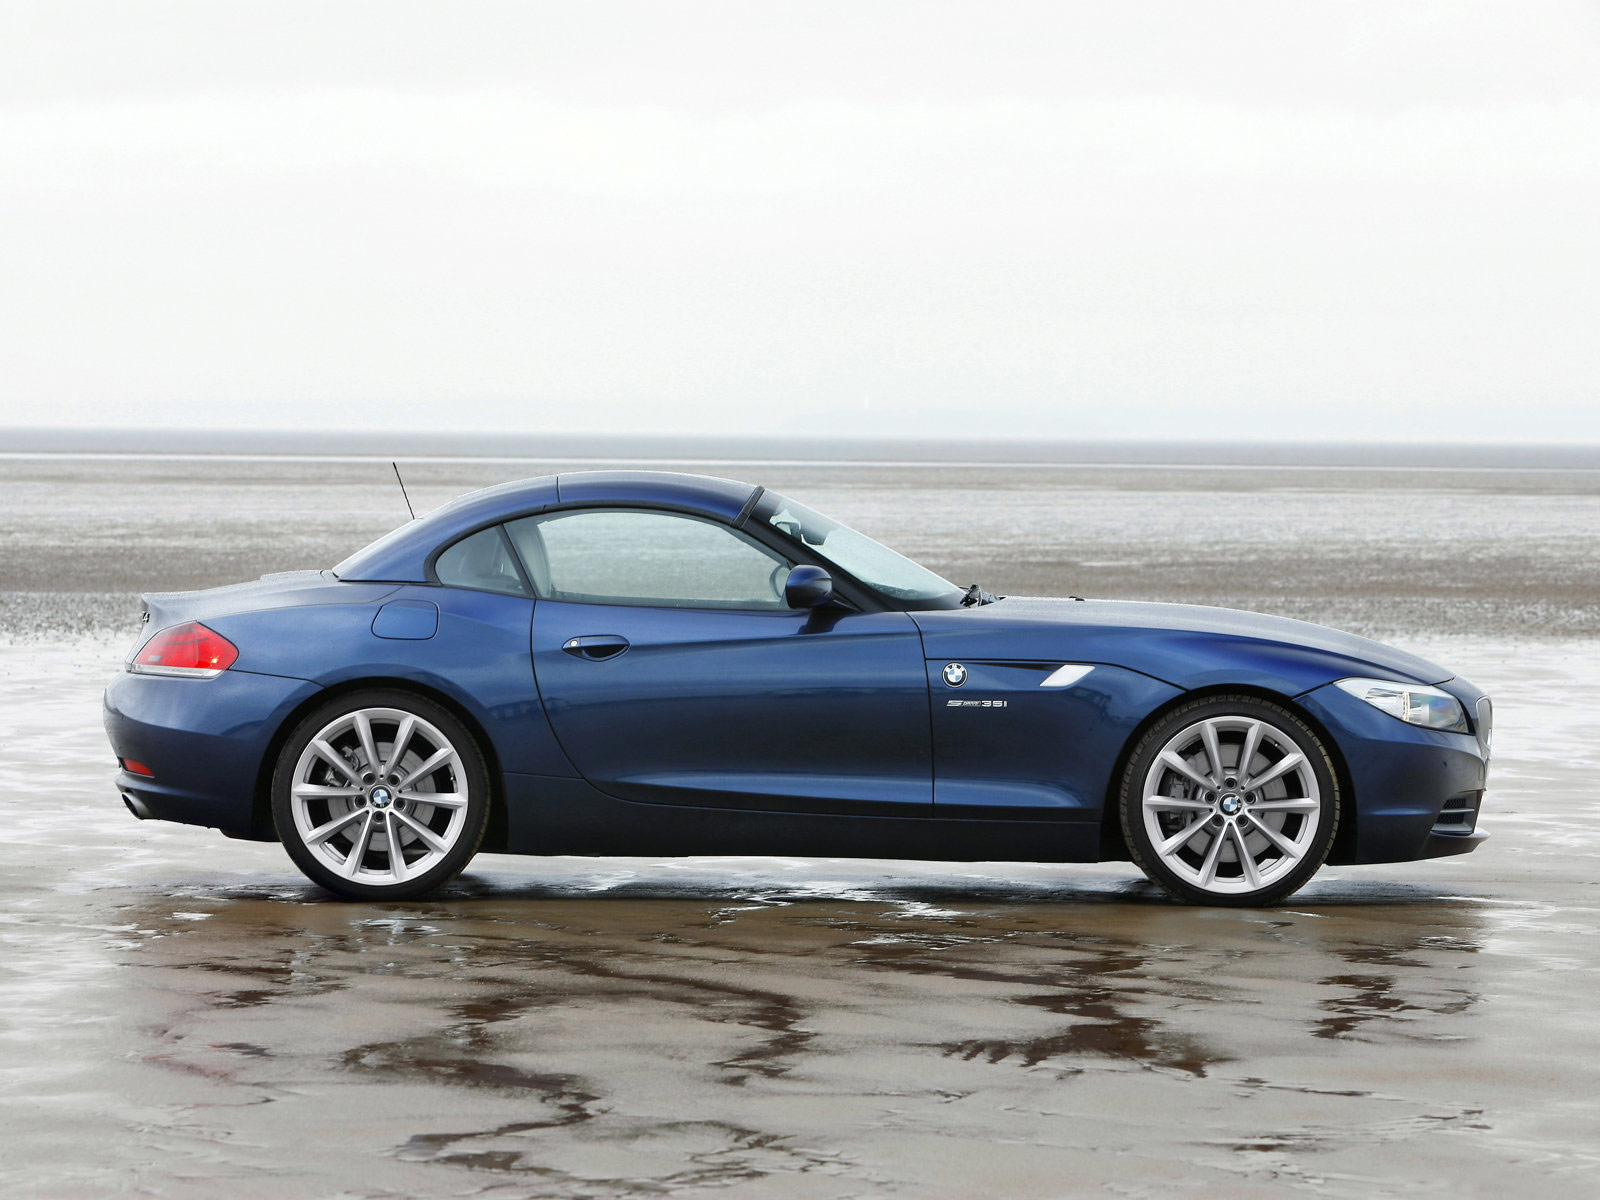 2010 Bmw Z4 Uk Version Car Accident Lawyers Wallpapers